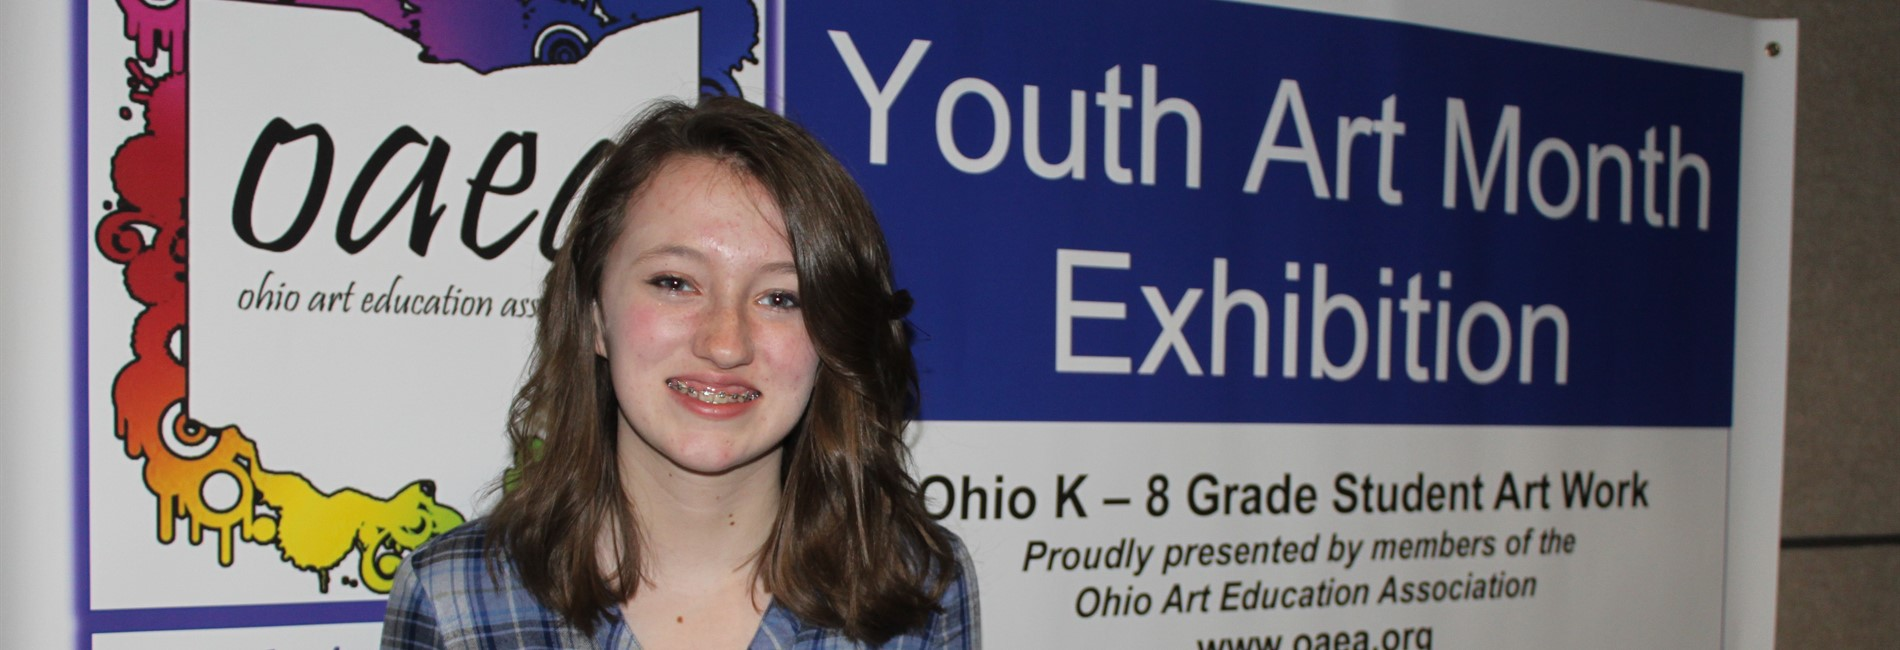 Lily Susag - Youth Art Winner